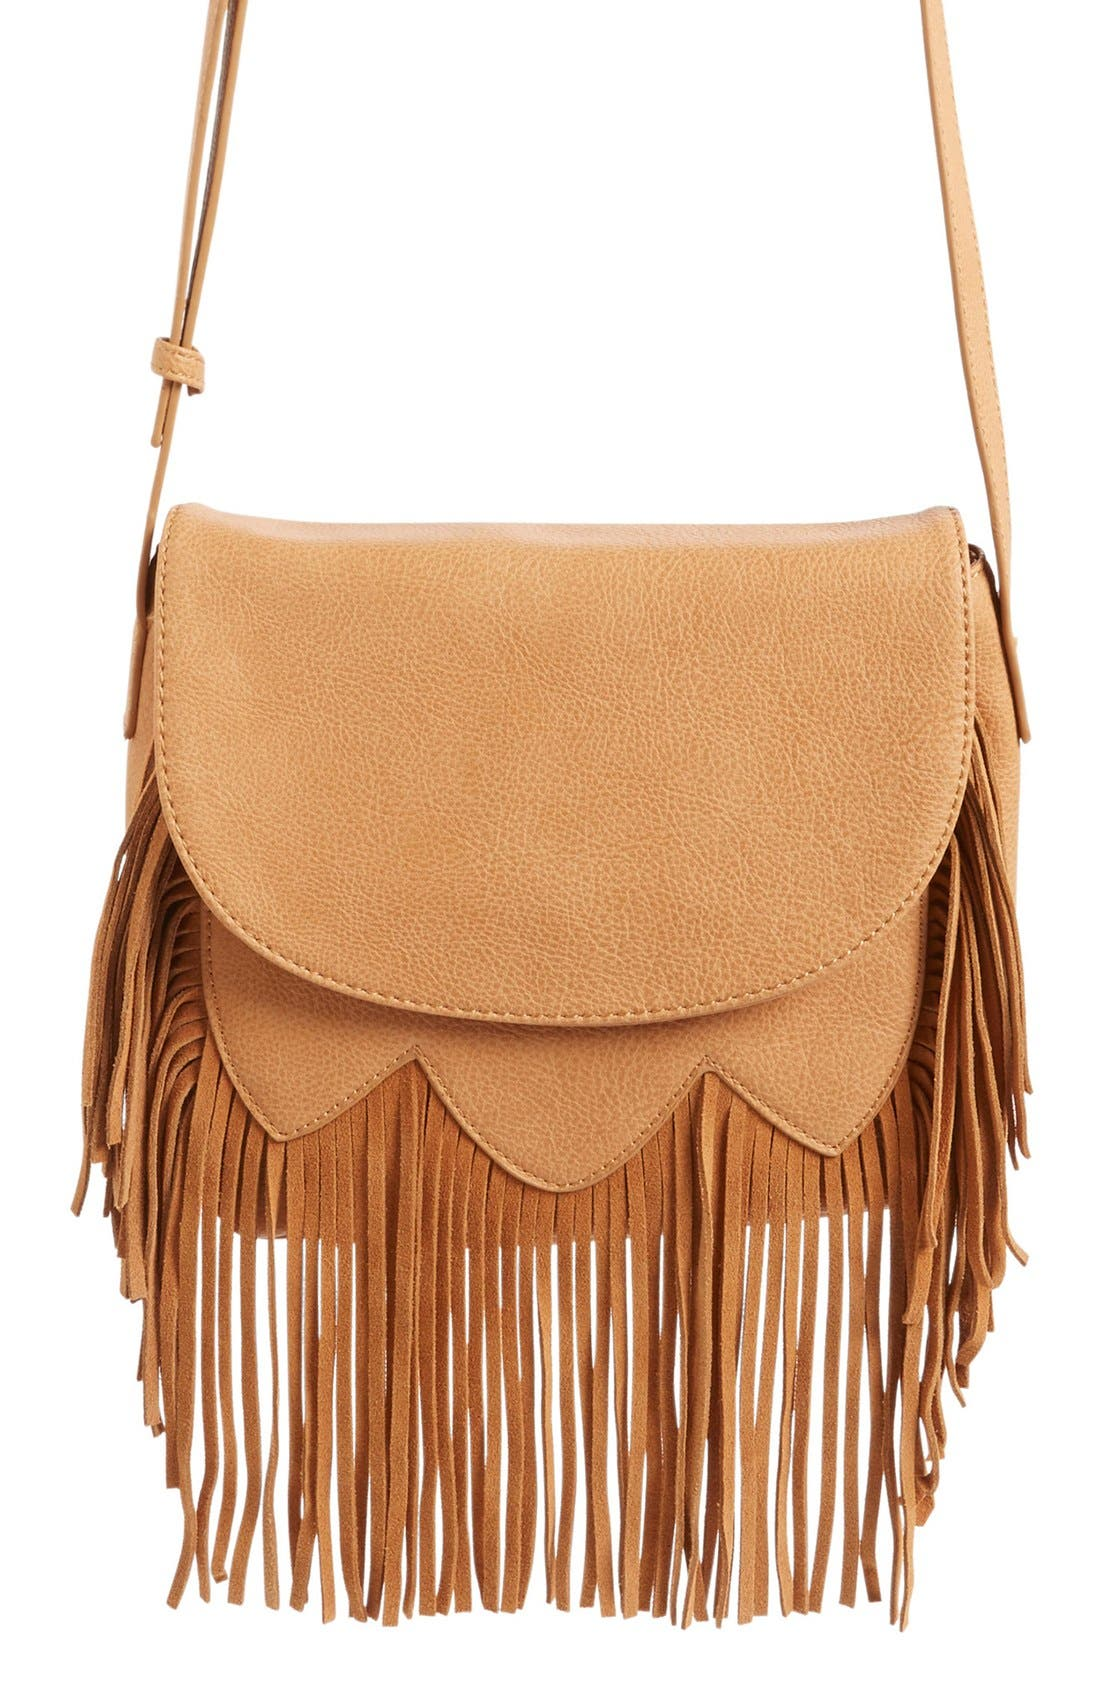 Alternate Image 1 Selected - Sole Society 'Kerry' Fringe Faux Leather Crossbody Bag